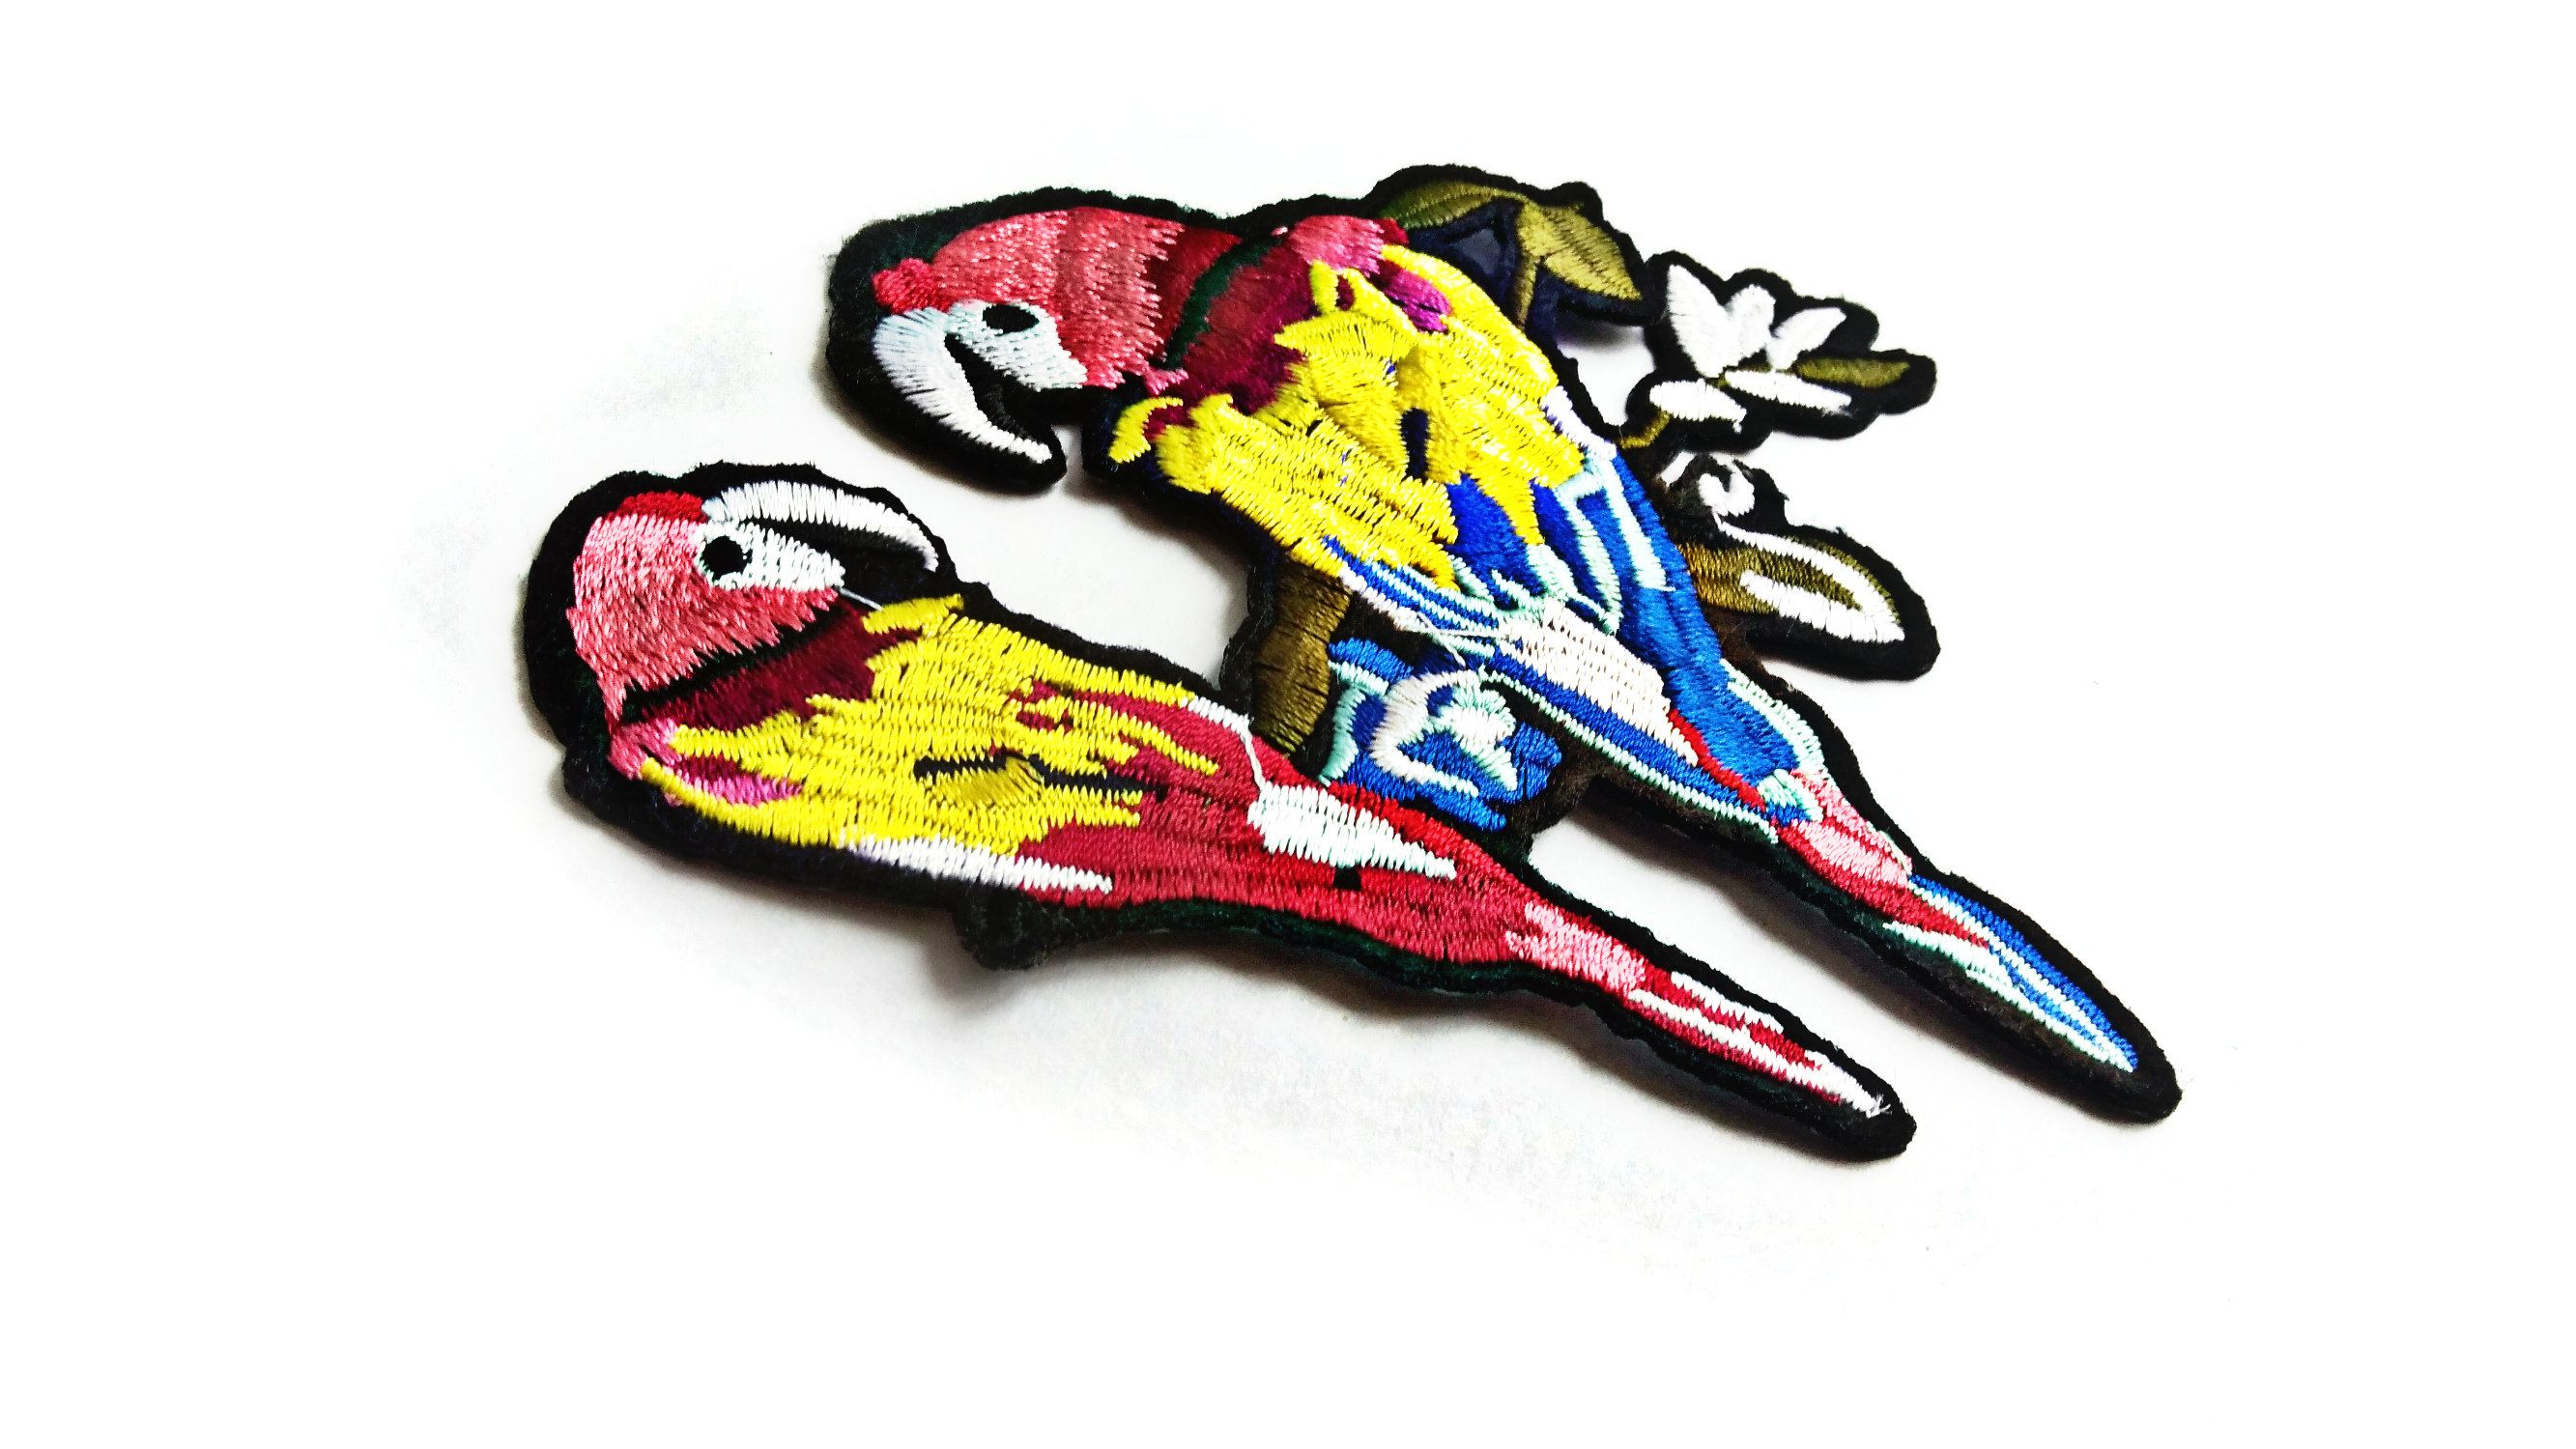 Embroidery Iron On Sew On Patch Parrot Bird Decoration Badges for Sewing Clothes